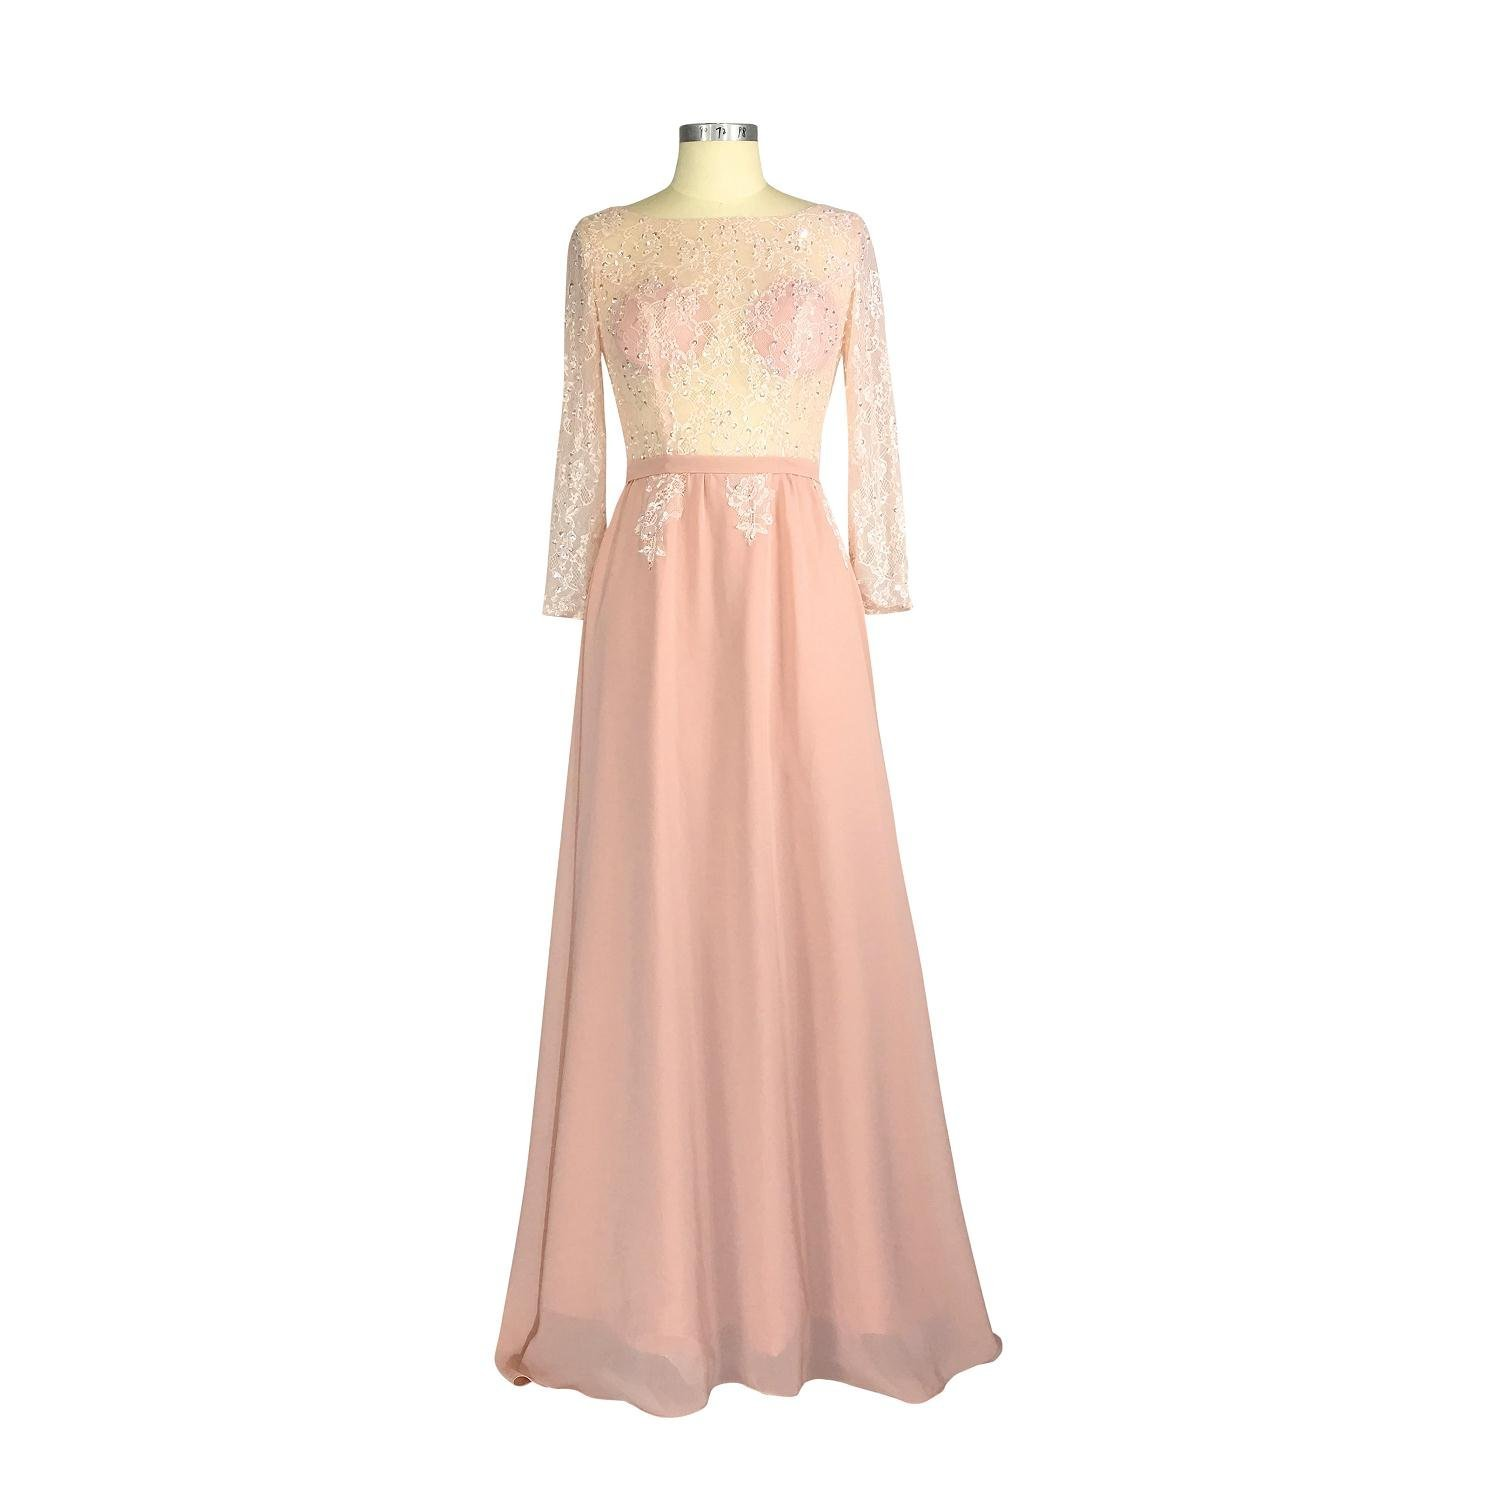 Nameilisha See Through Jewel Long Sleeves A-line Chiffon Nude Pink Formal Gowns Party Dresses Evening Dress NM5015